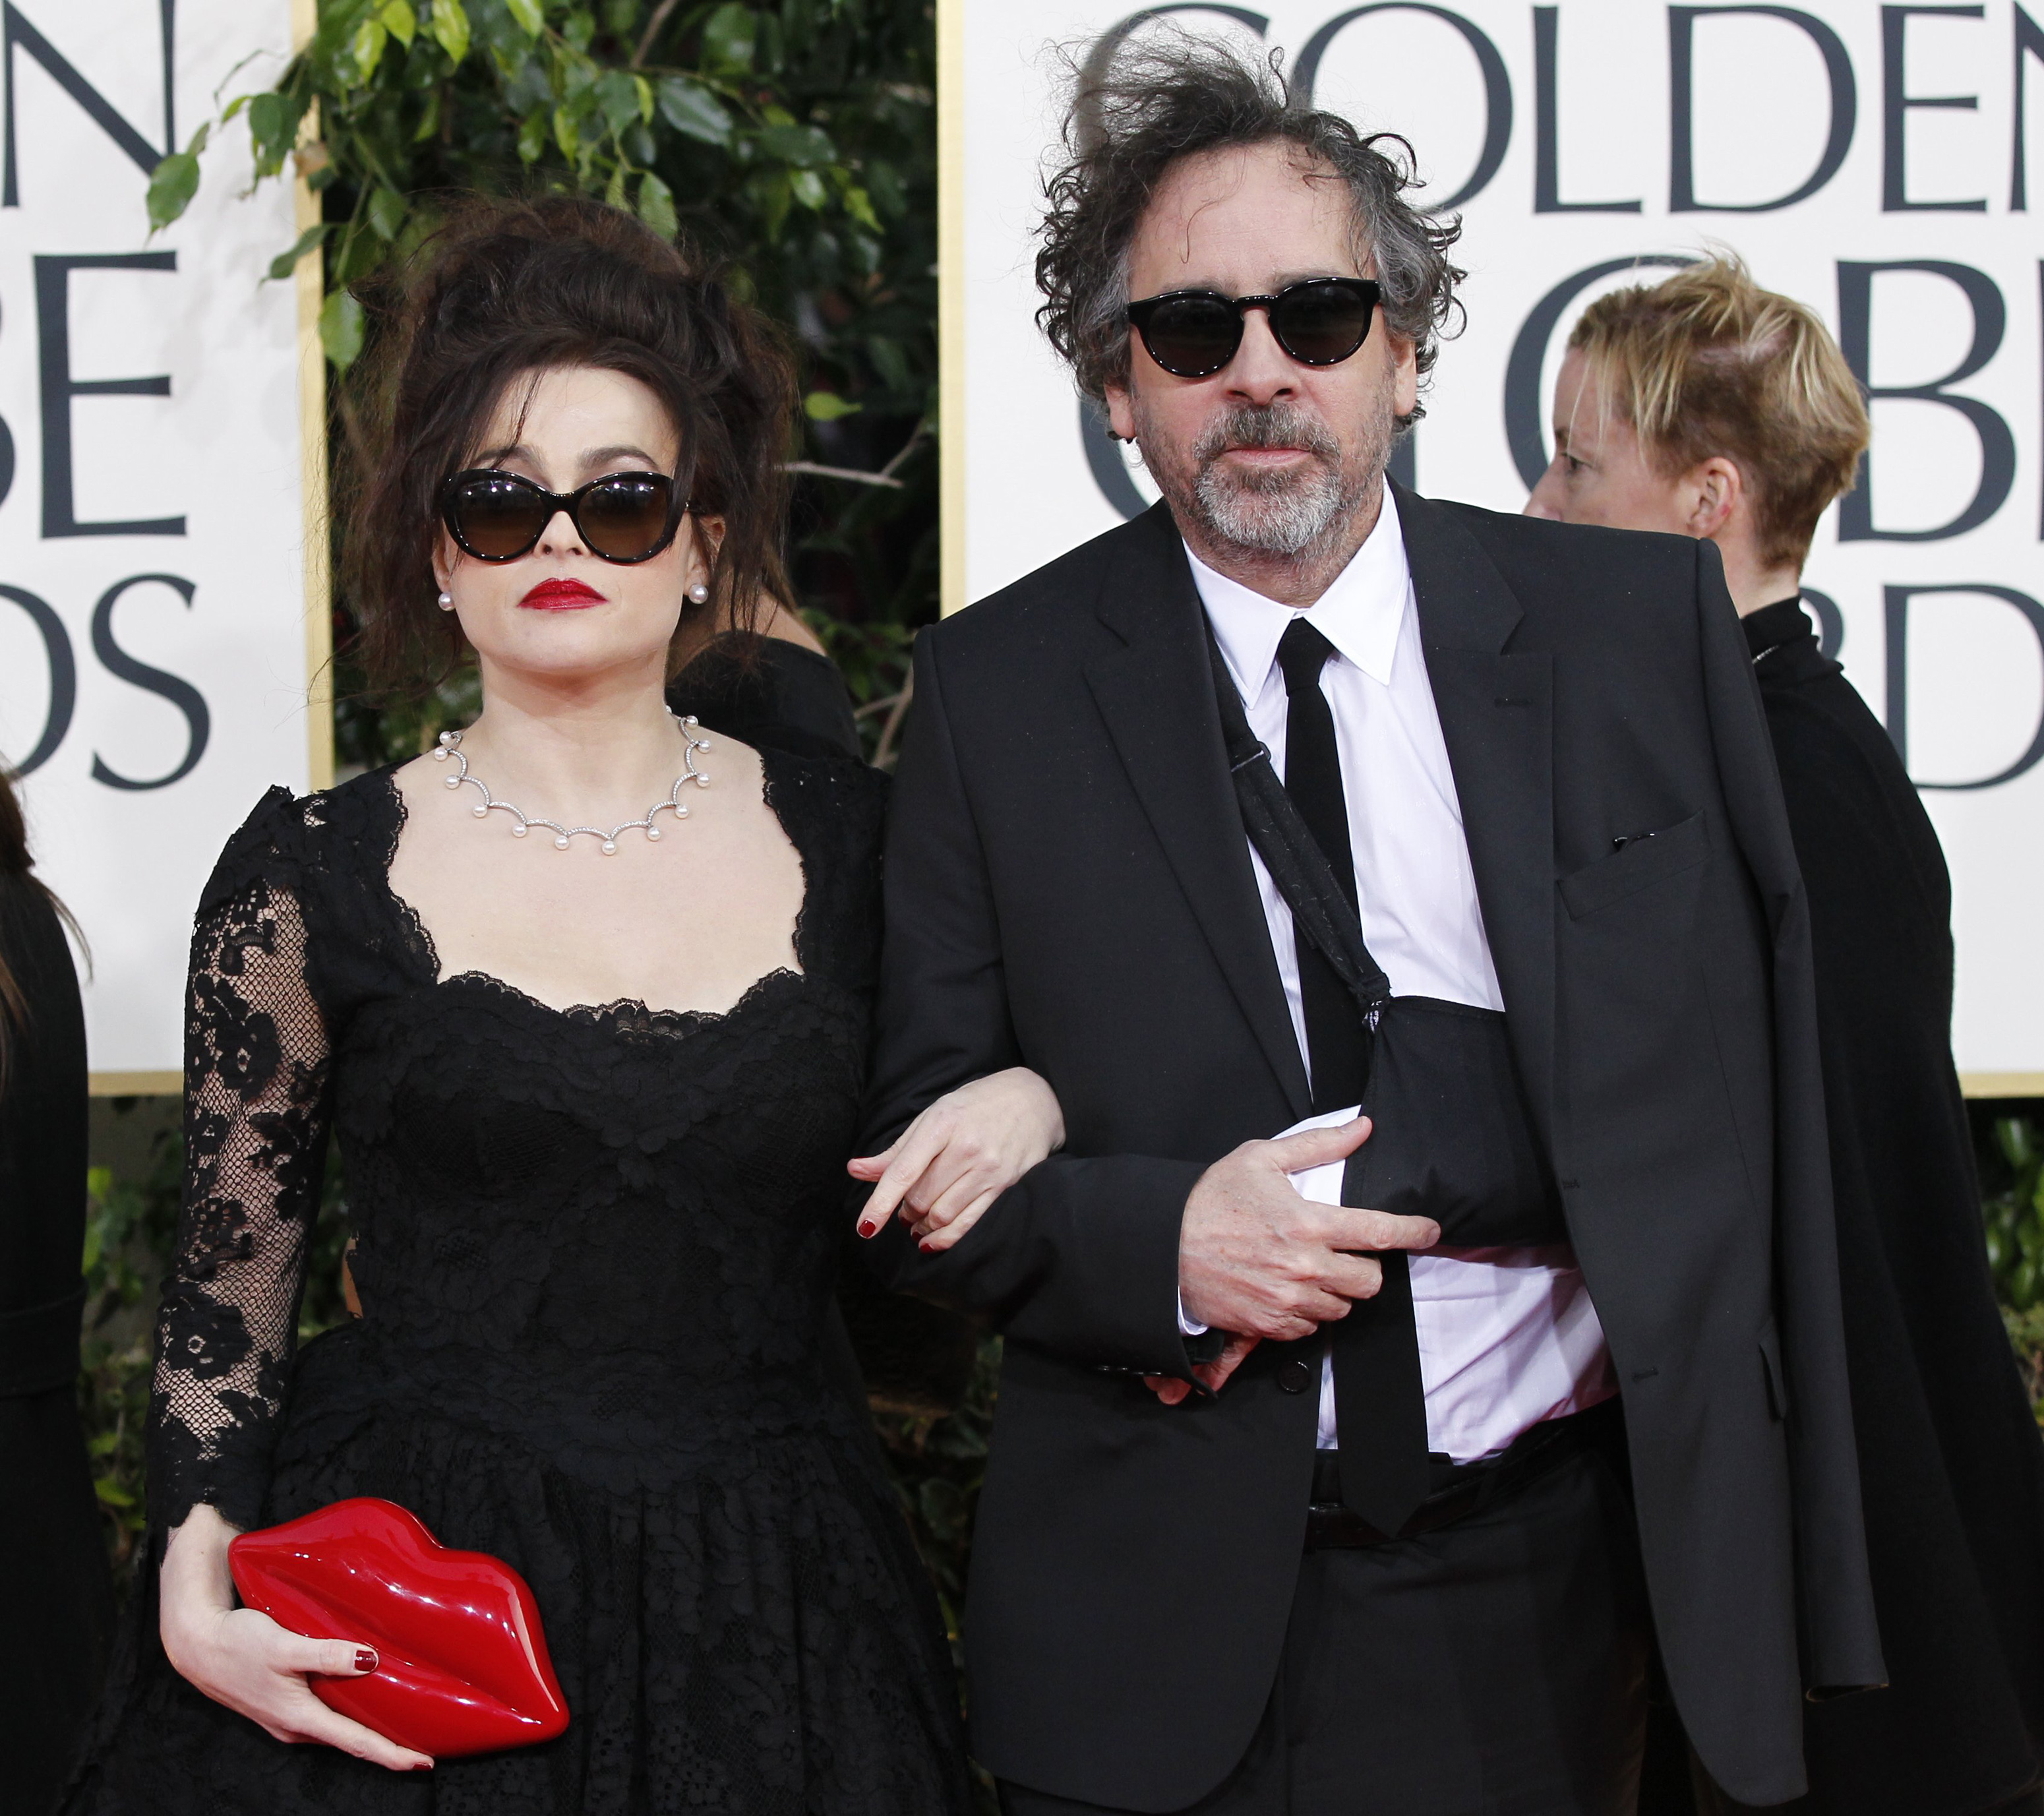 helena bonham carter tim burton split reportedly happened a year ago cheating rumors resurface. Black Bedroom Furniture Sets. Home Design Ideas